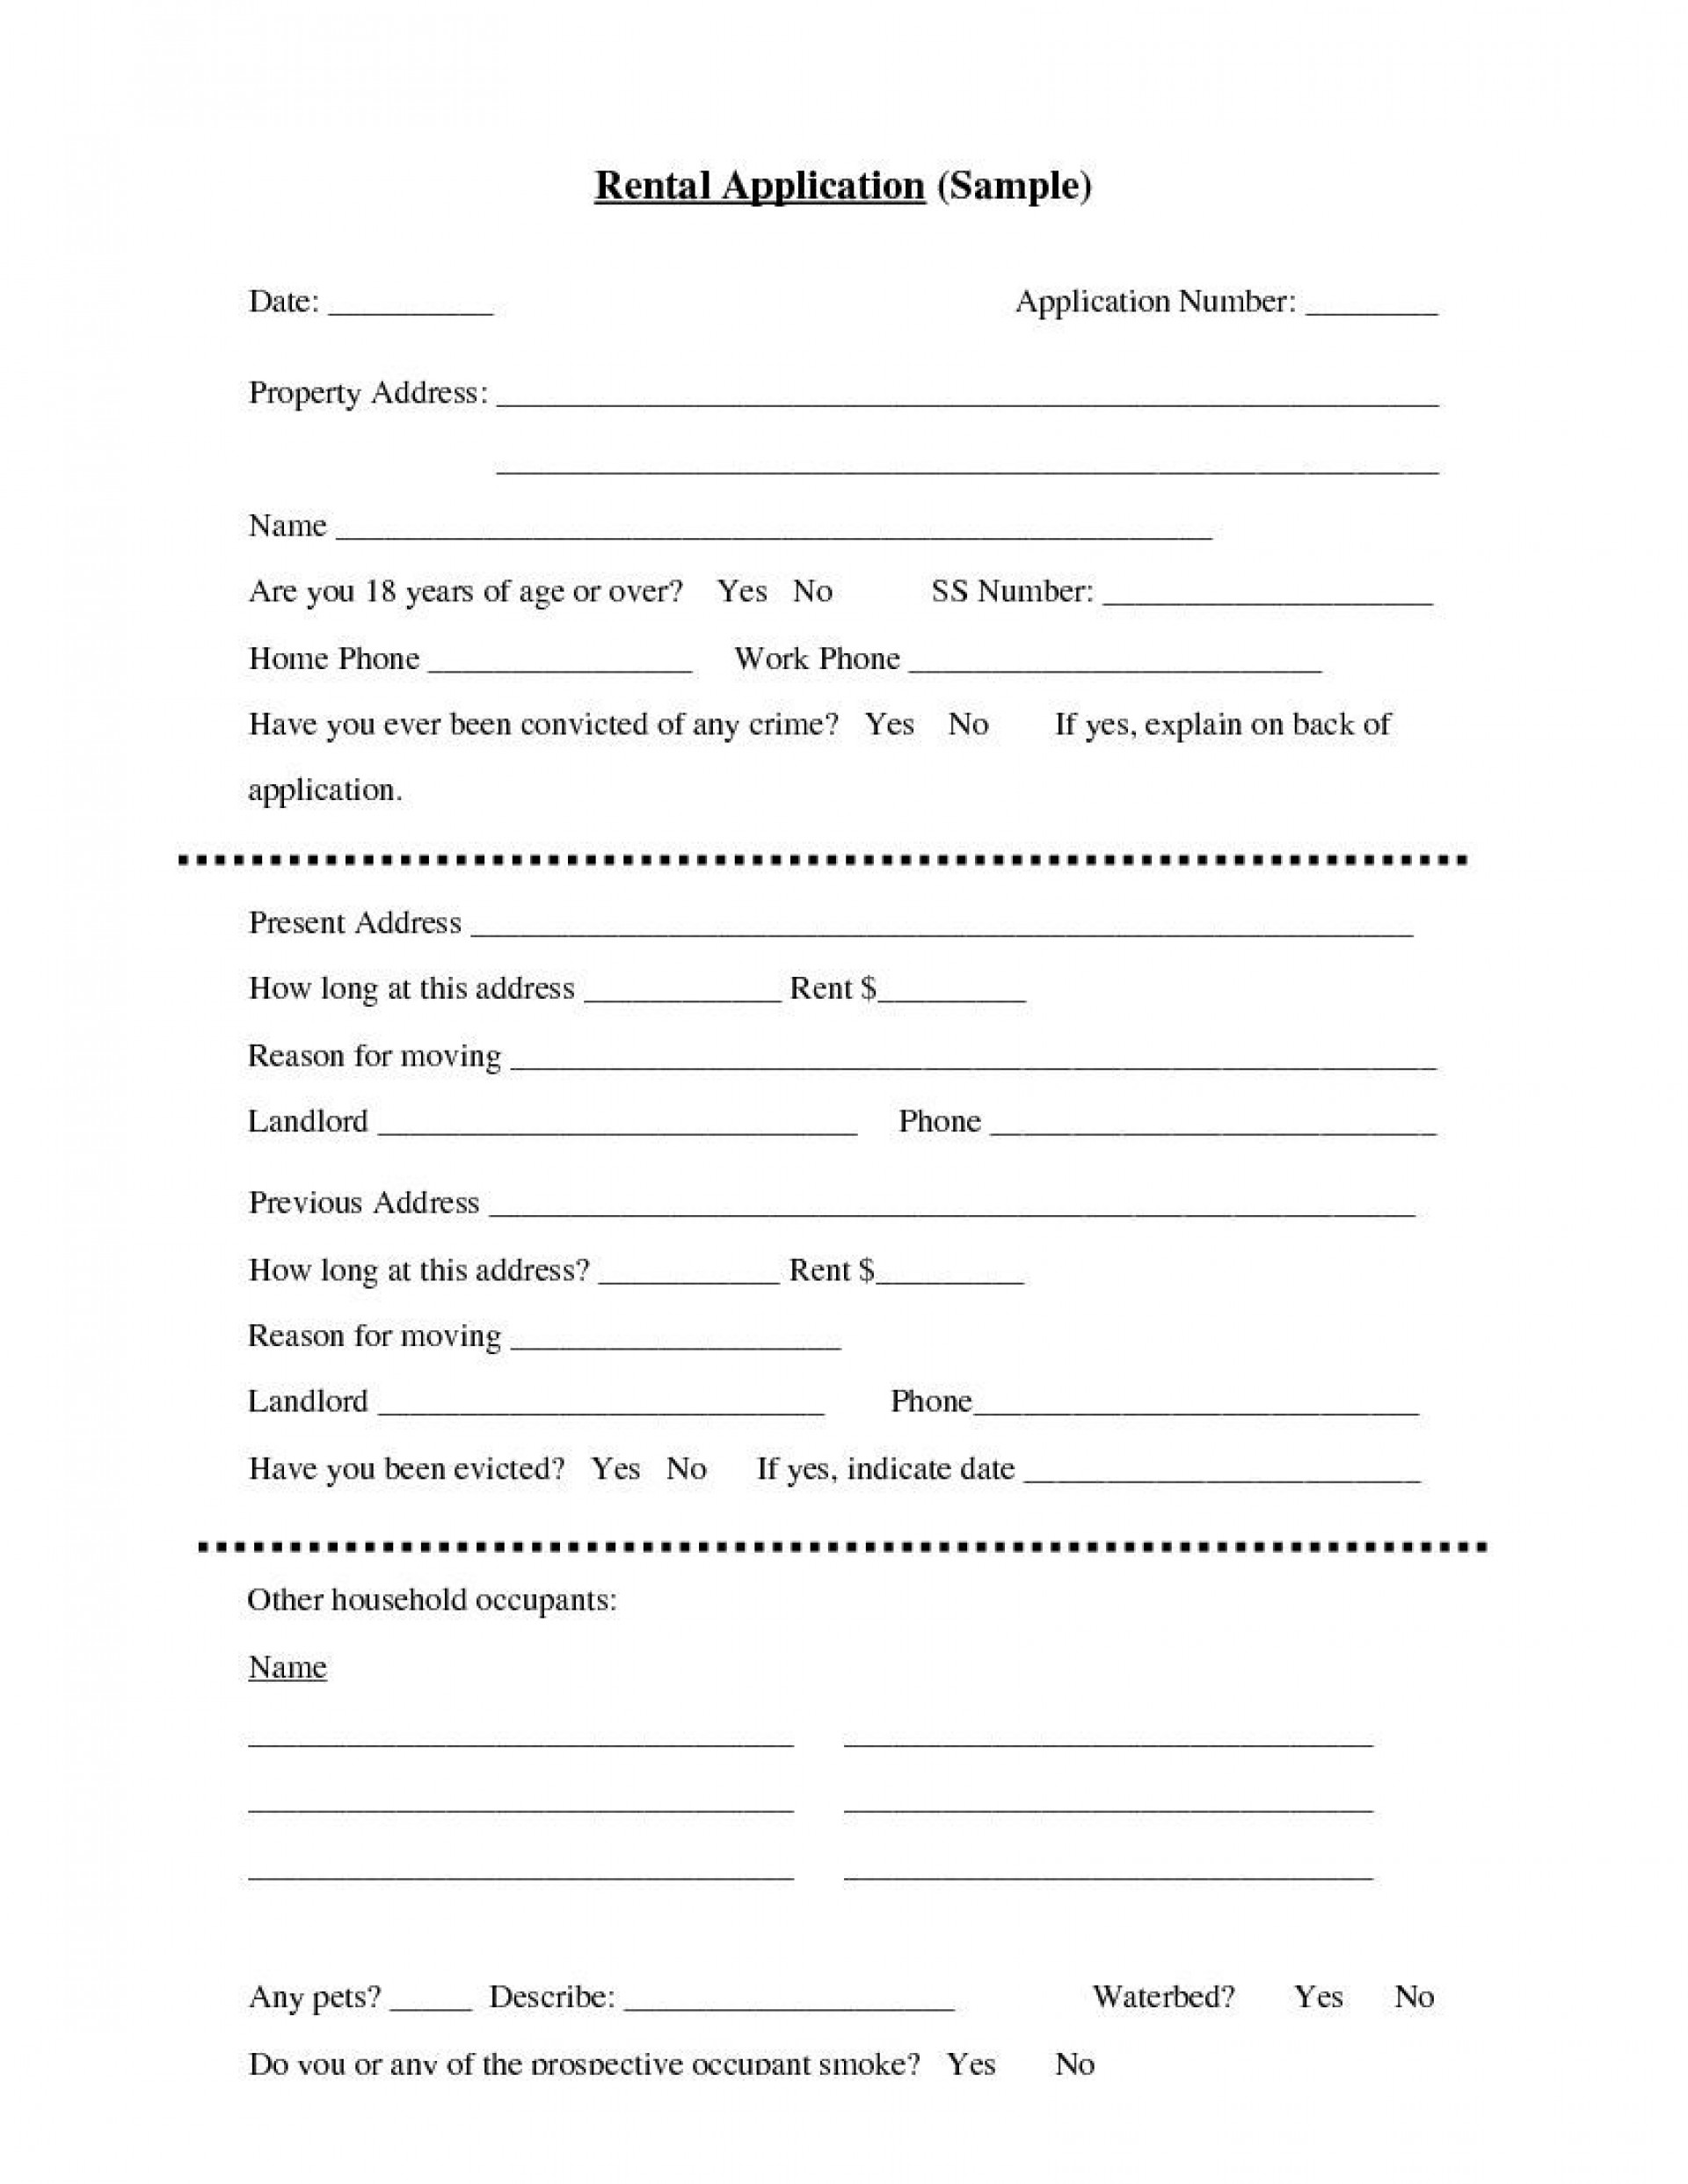 004 Unbelievable Apartment Rental Application Template Photo  Free Form Ontario1920